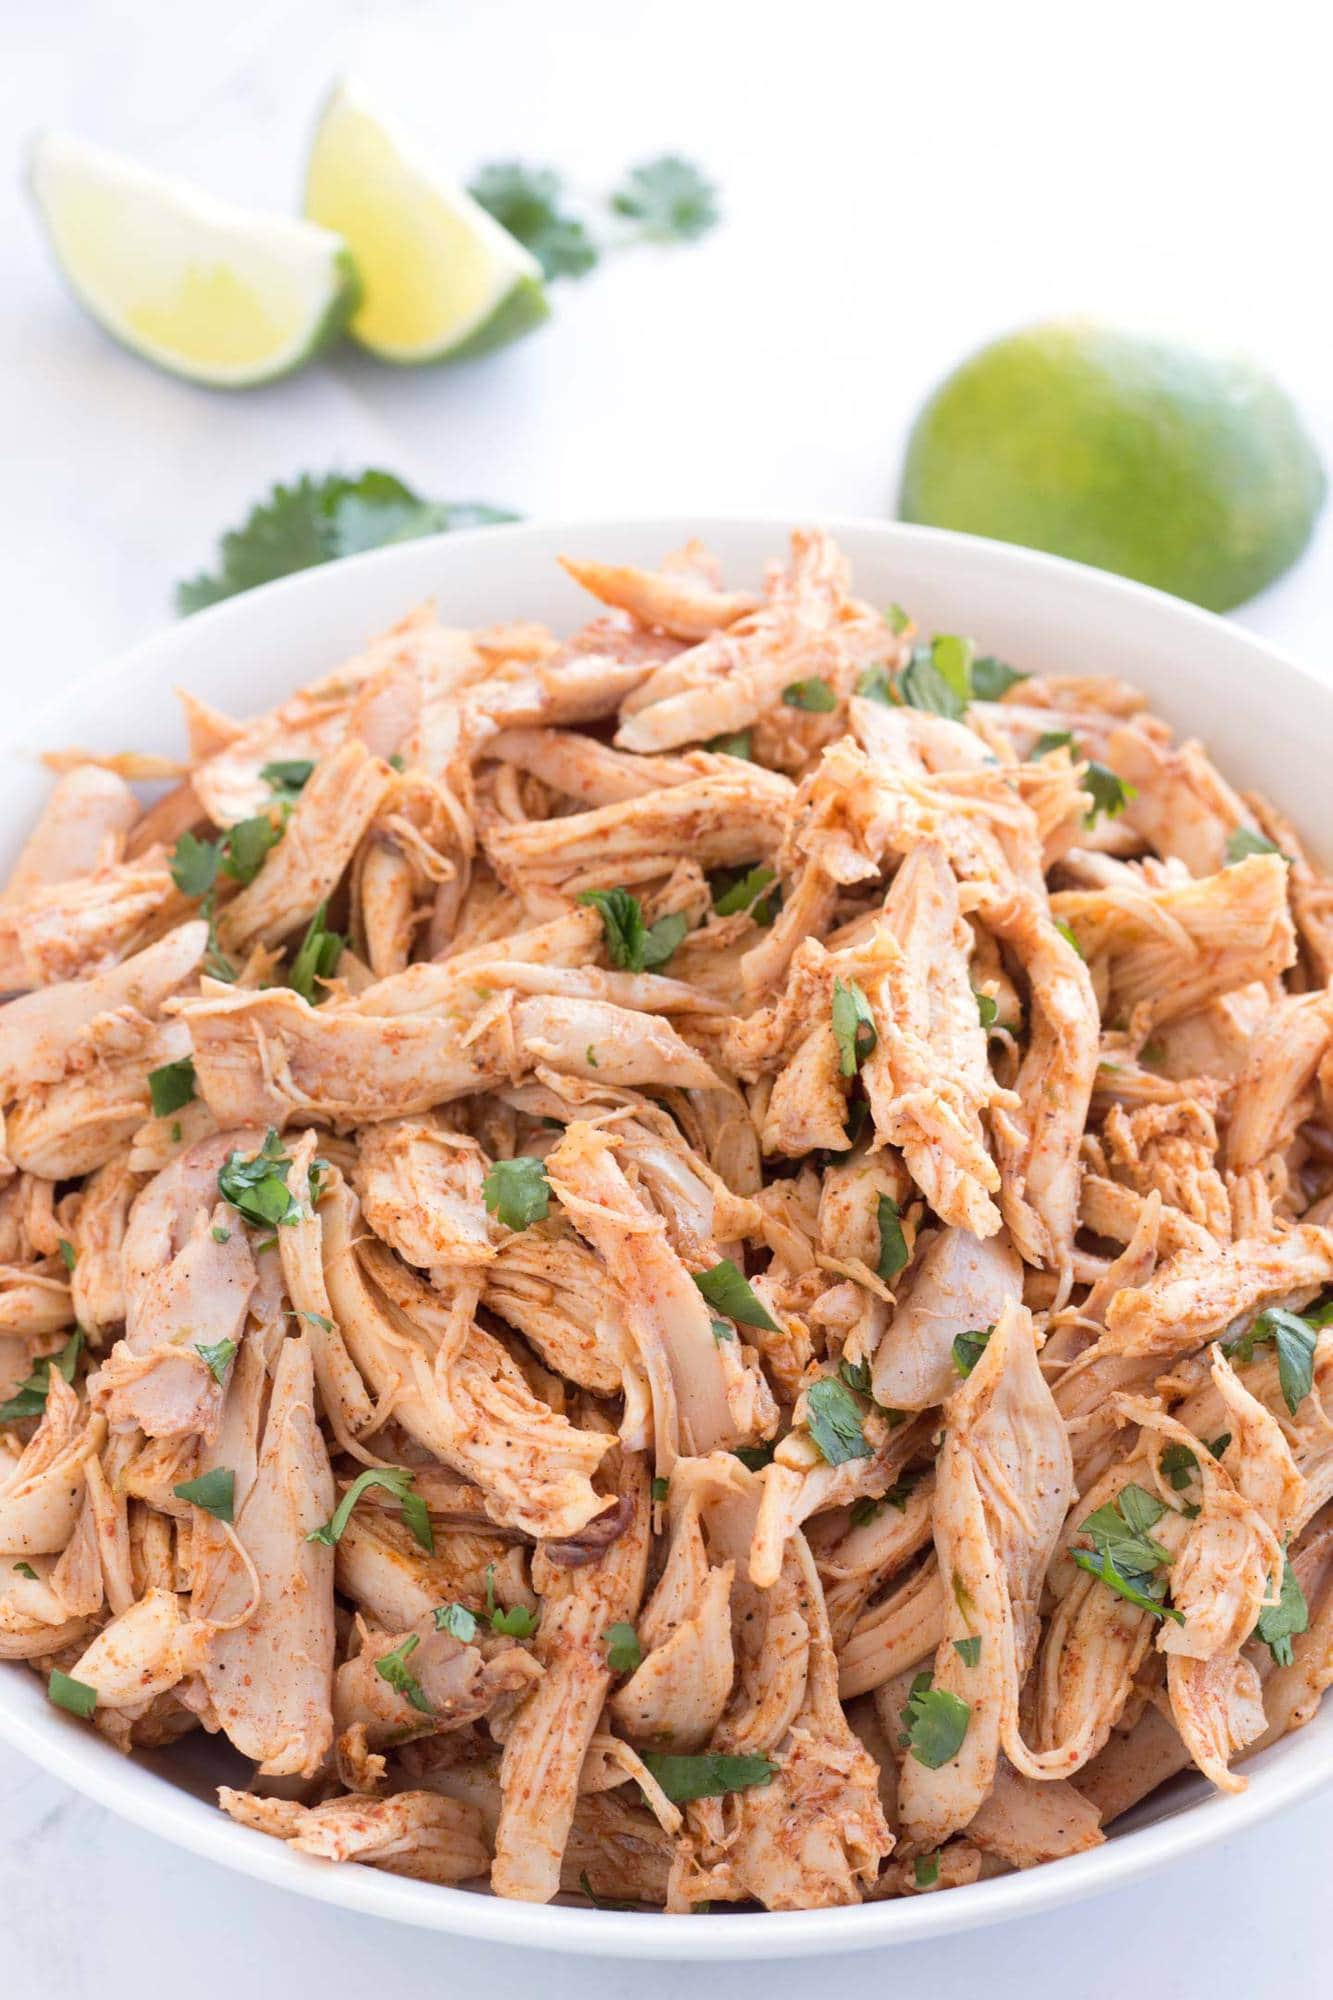 Full bowl of shredded chicken with cilantro sprinkled on top